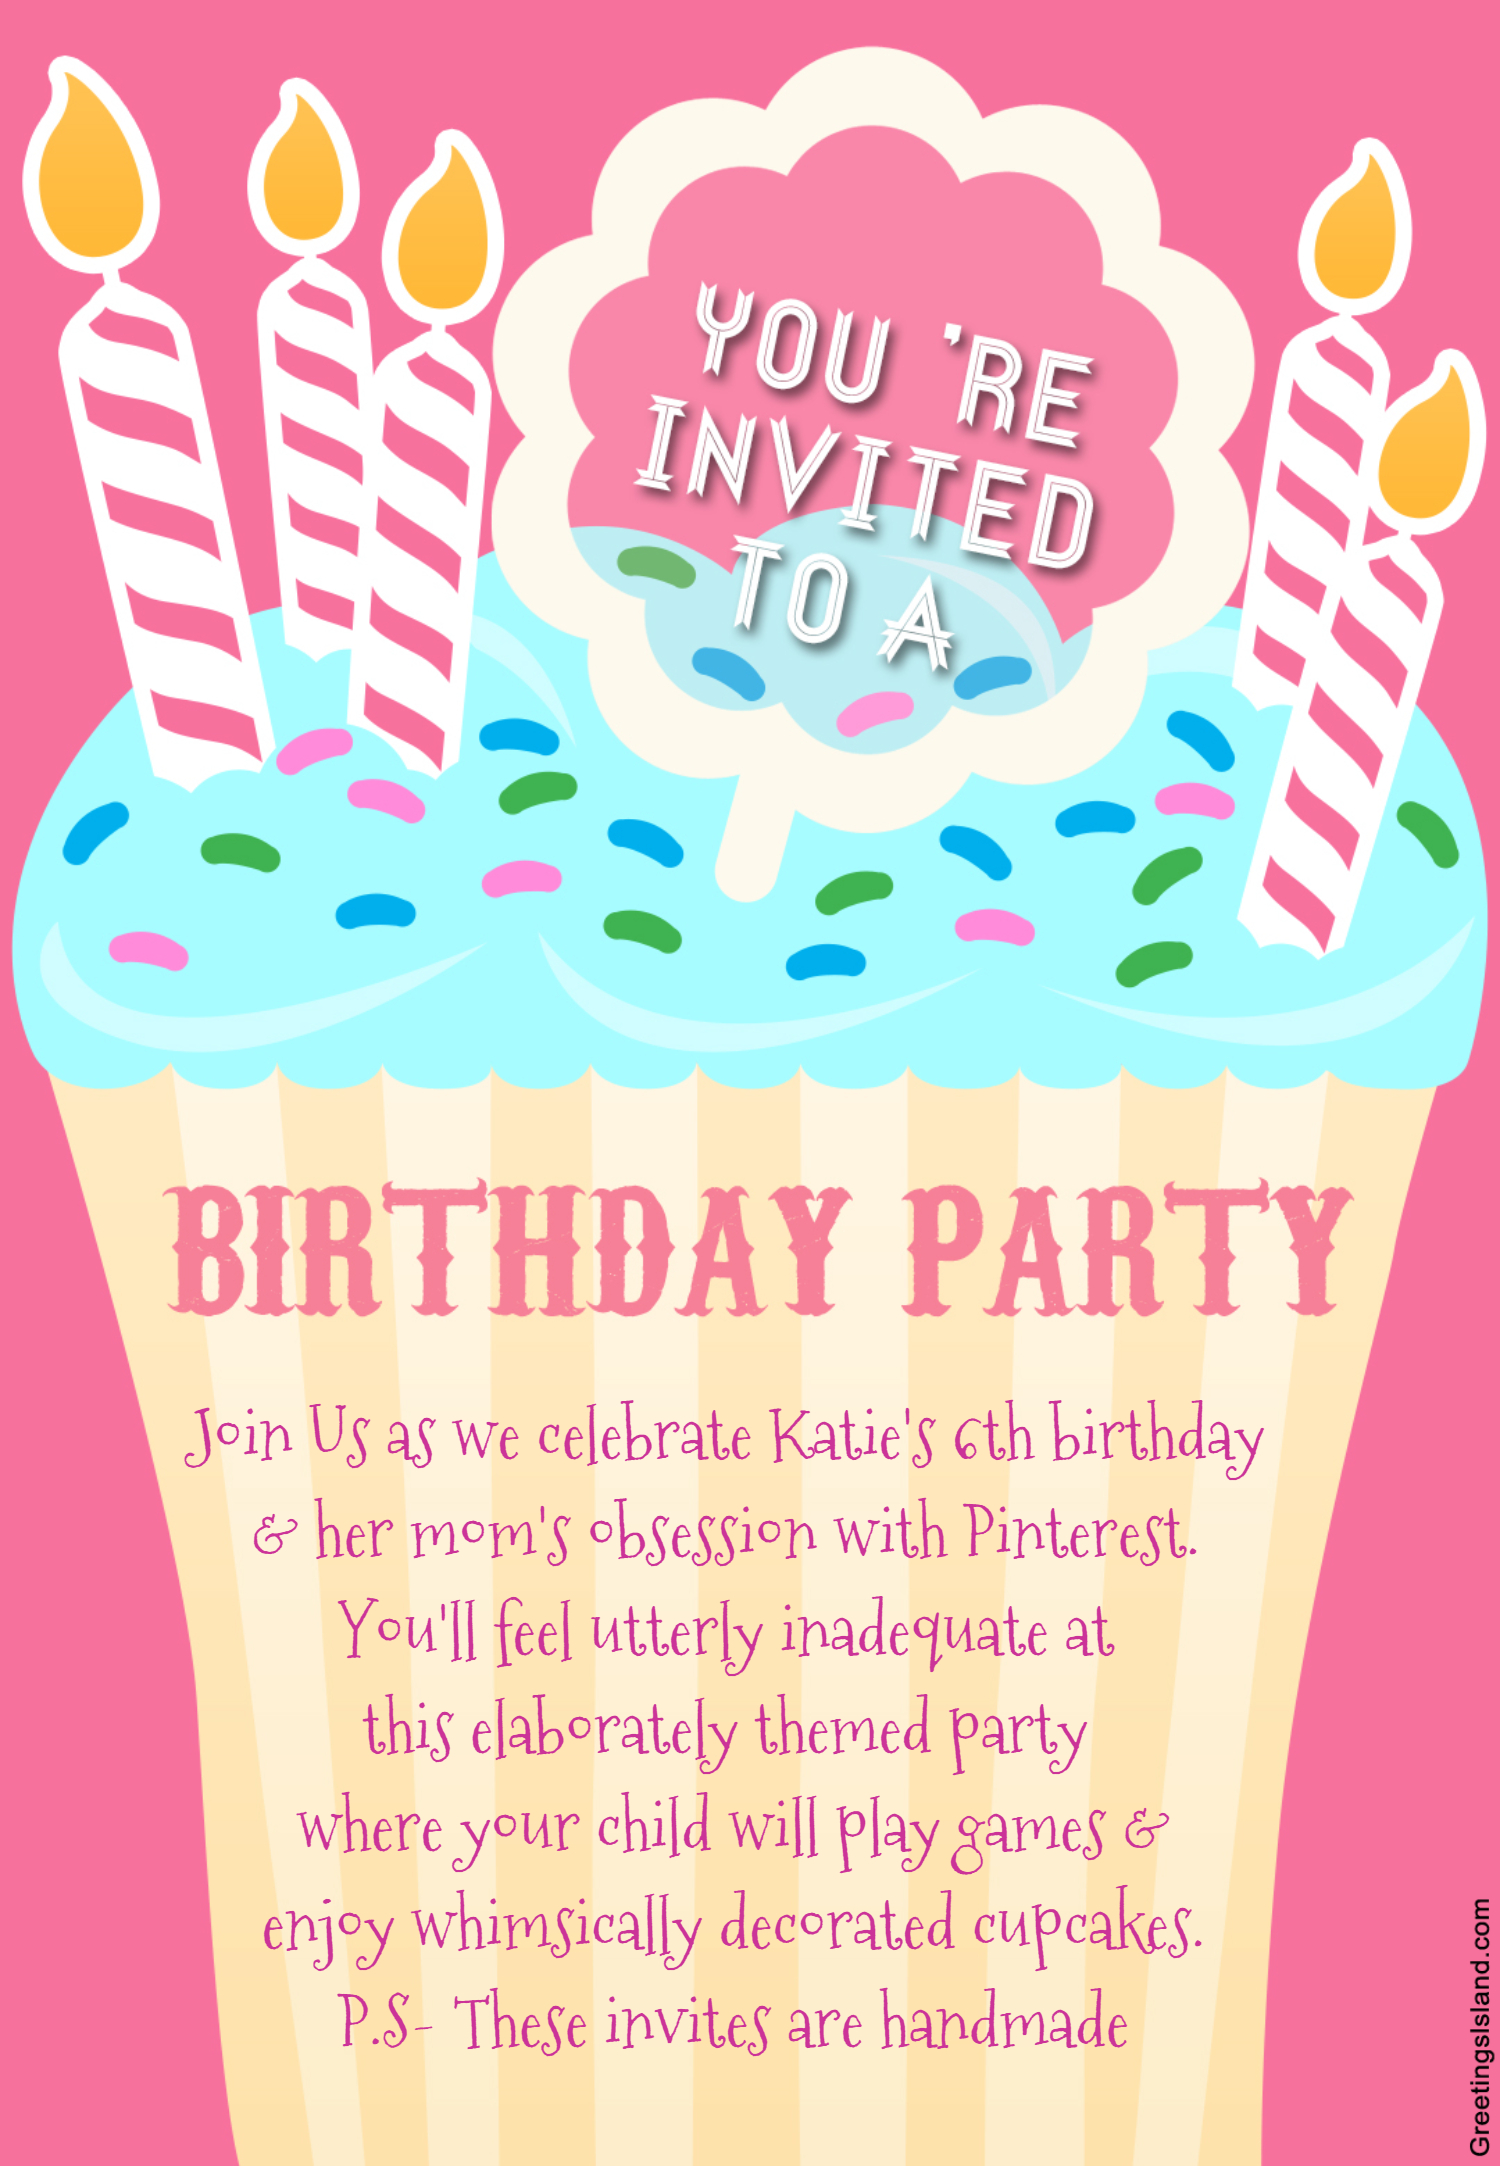 come to my birthday party invitation ; you-are-invited-to-my-birthday-party-my-invitation-honest-birthday-party-invitations-on-you-are-cordially-invited-to-my-birthday-party